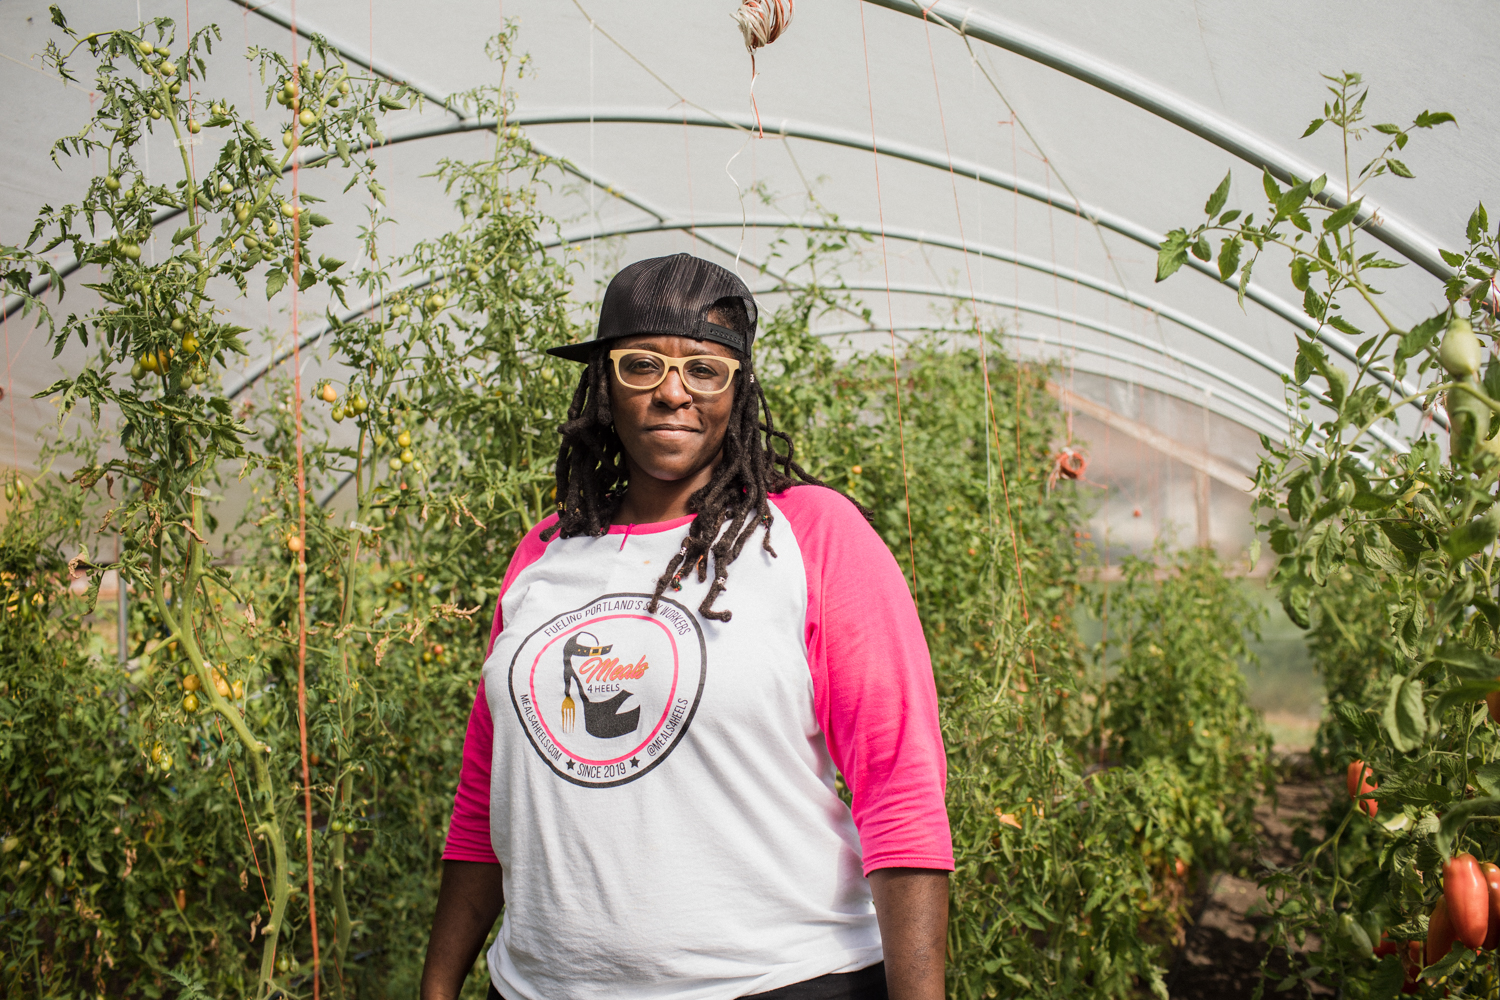 A woman stands in a greenhouse